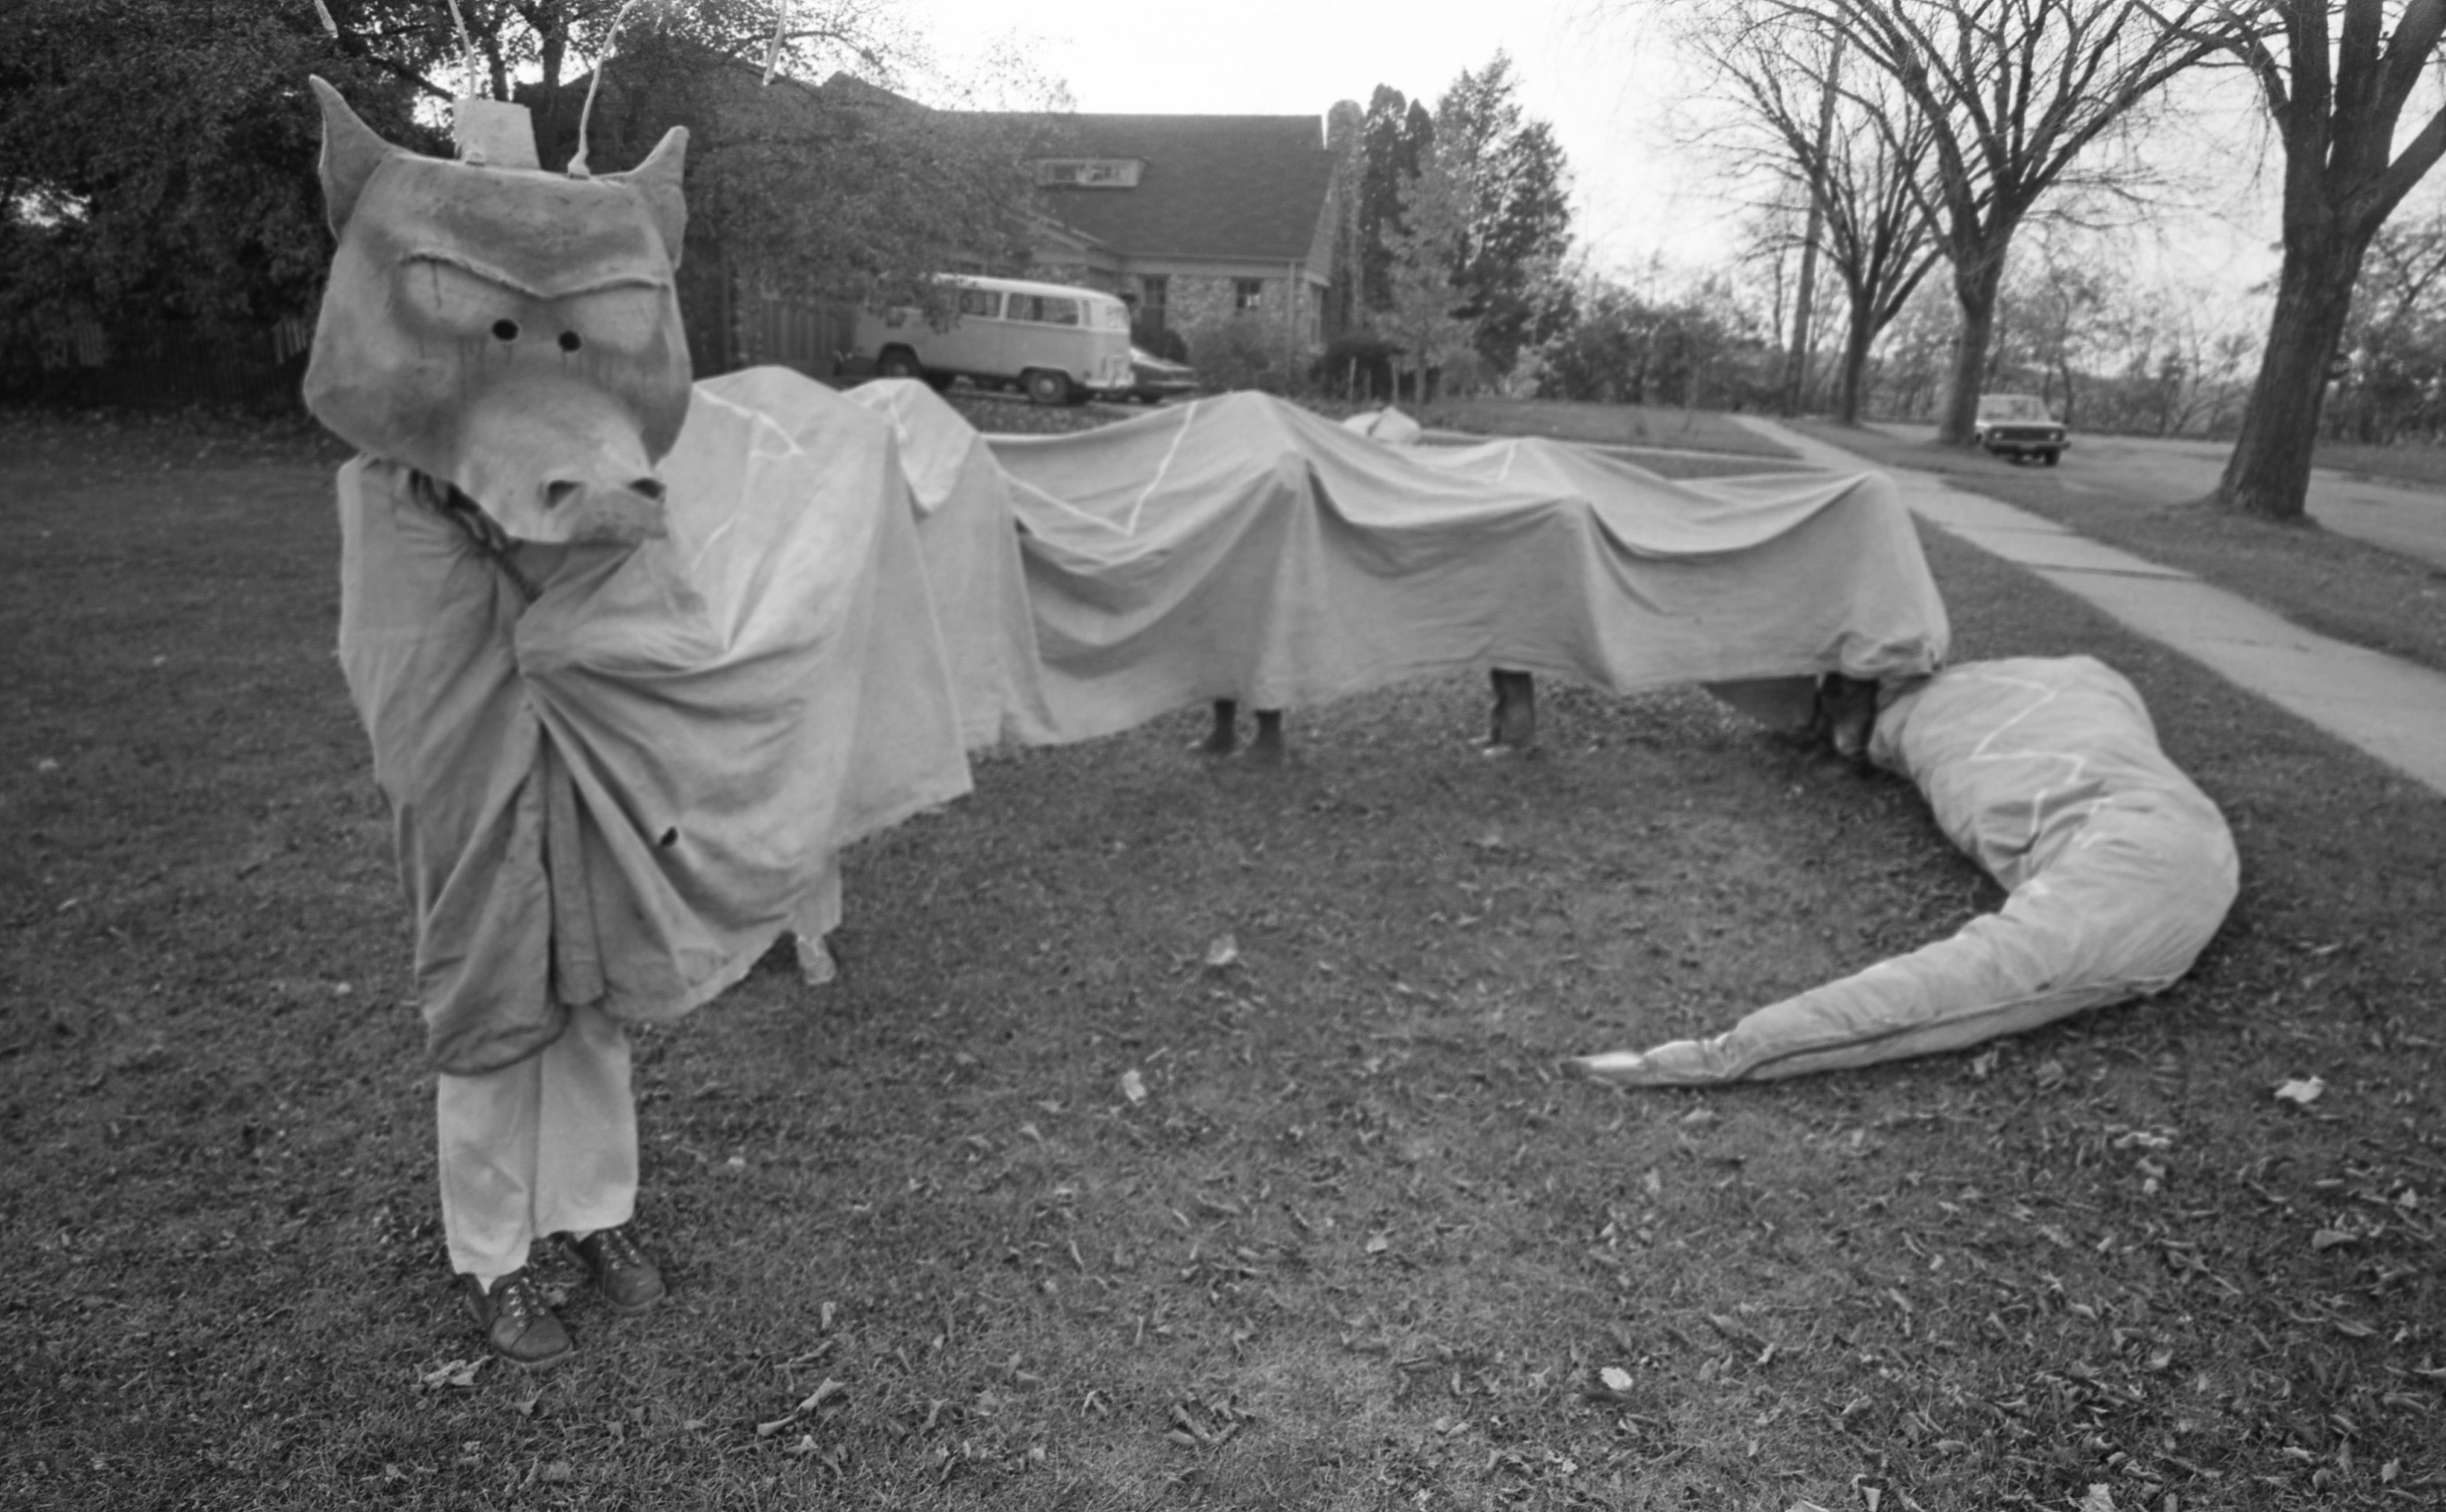 Six People In One Halloween Dragon Costume, October 1975 image